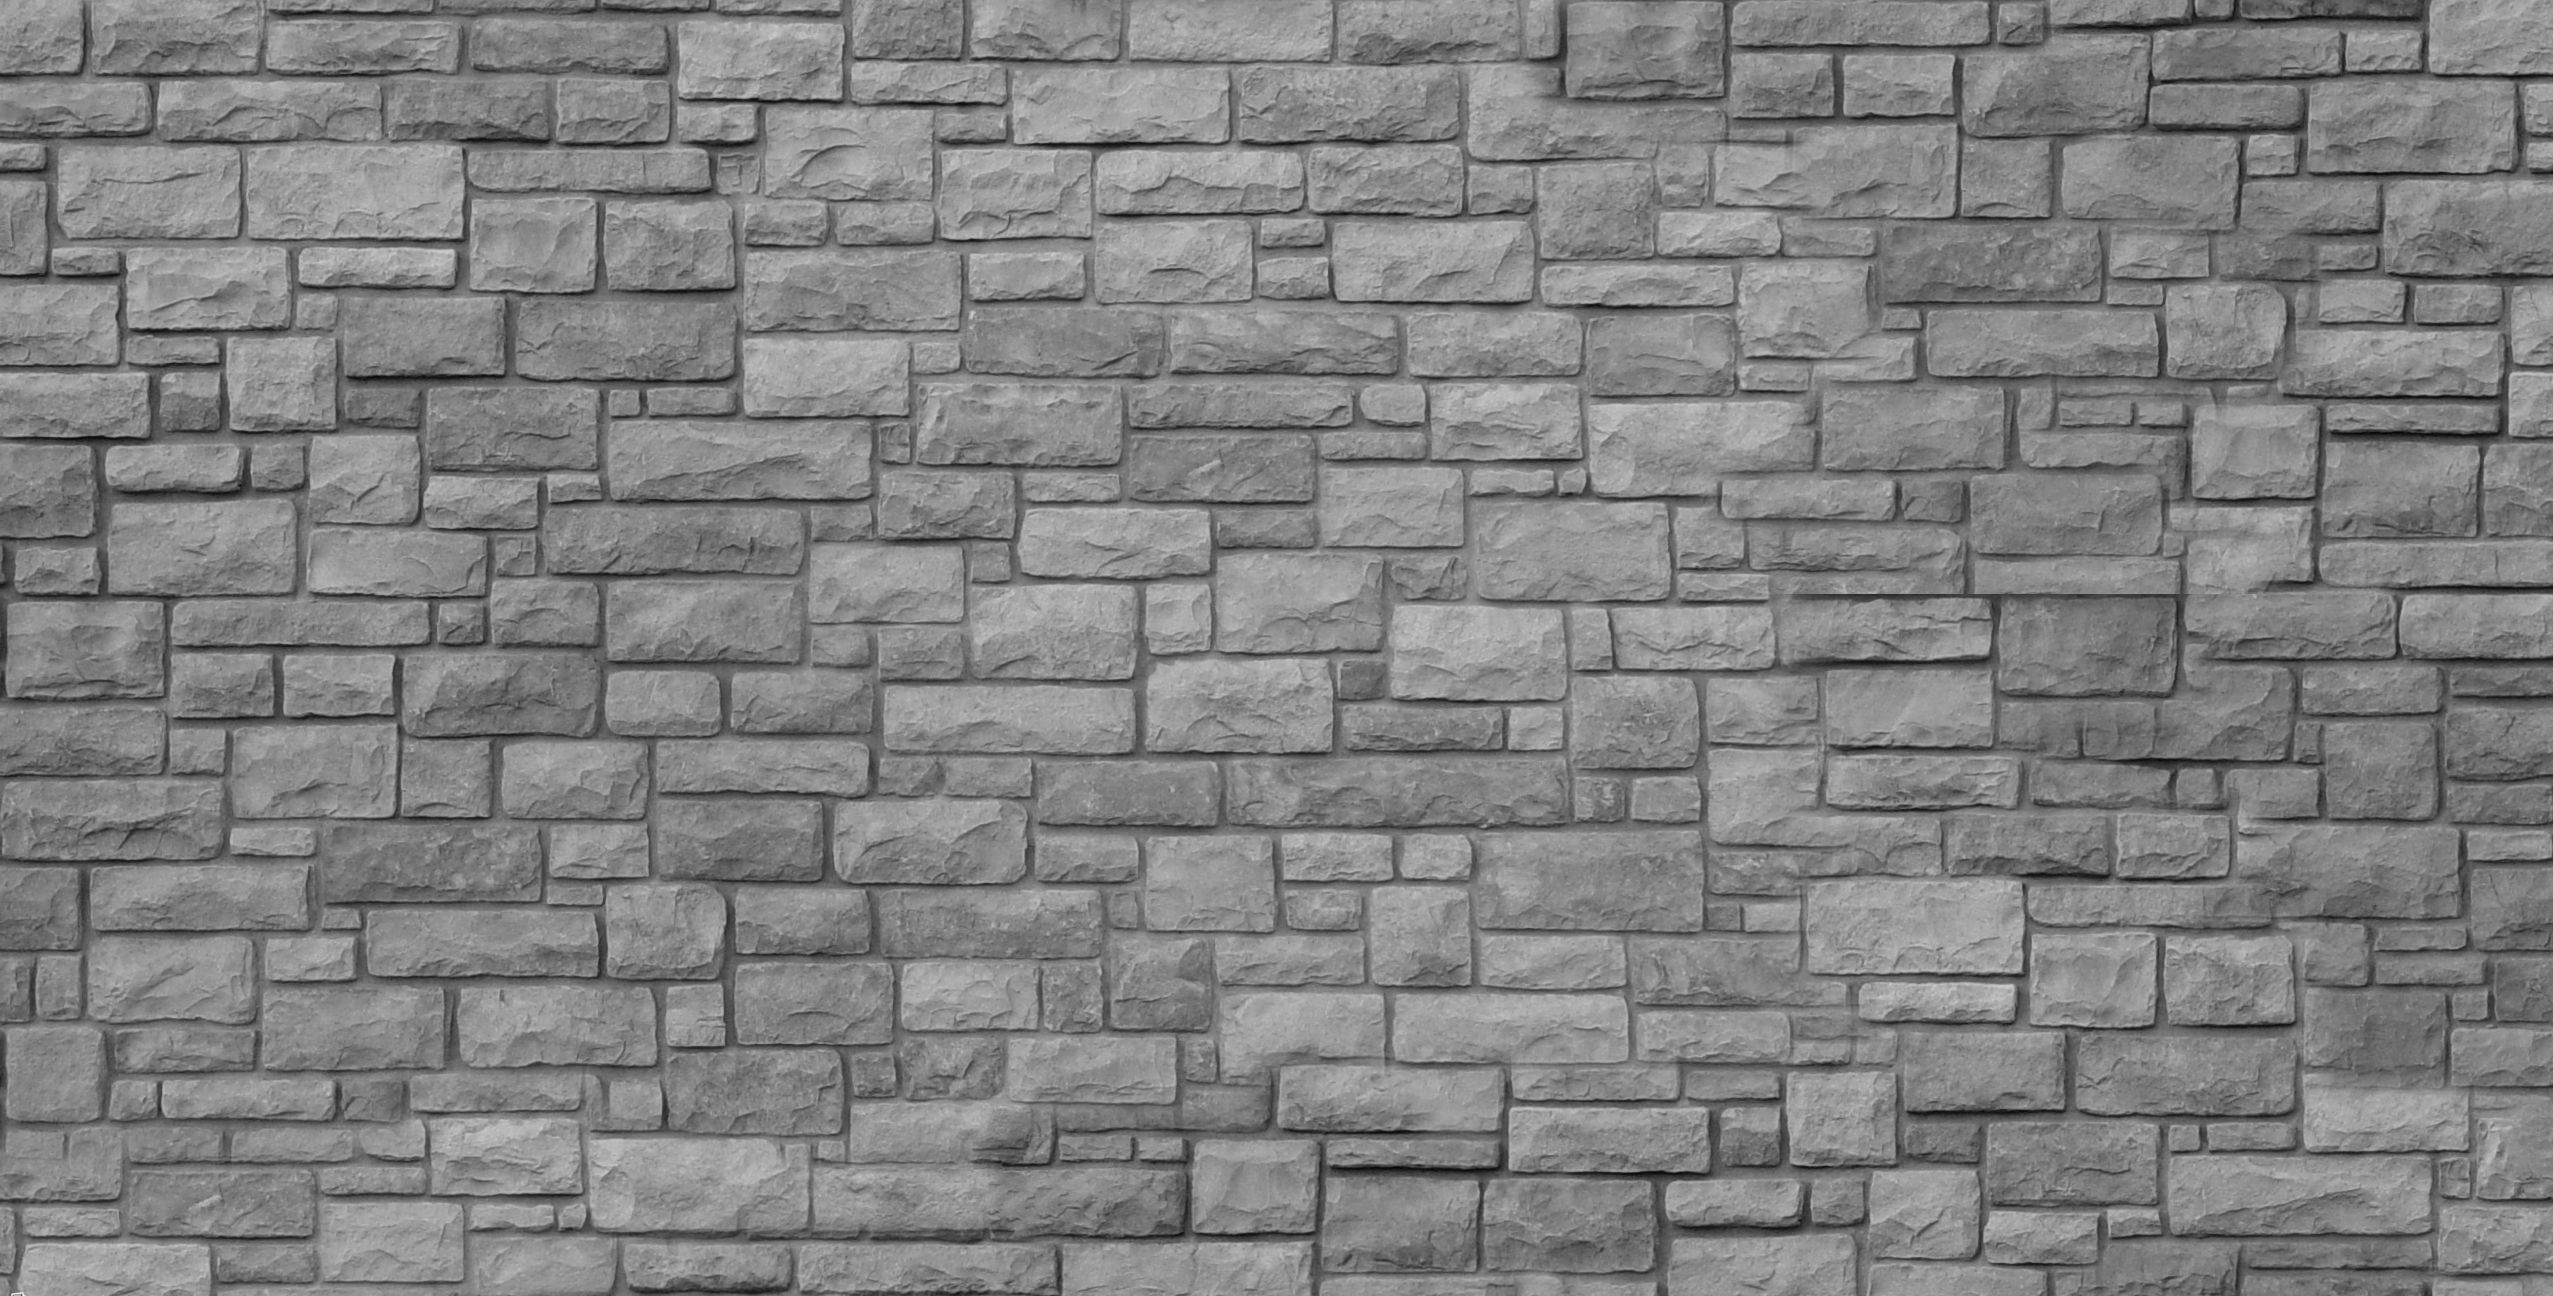 K T Qu H Nh Nh Cho Pebble Wall Texture Seamless Texture Pinterest Wall Textures And Walls